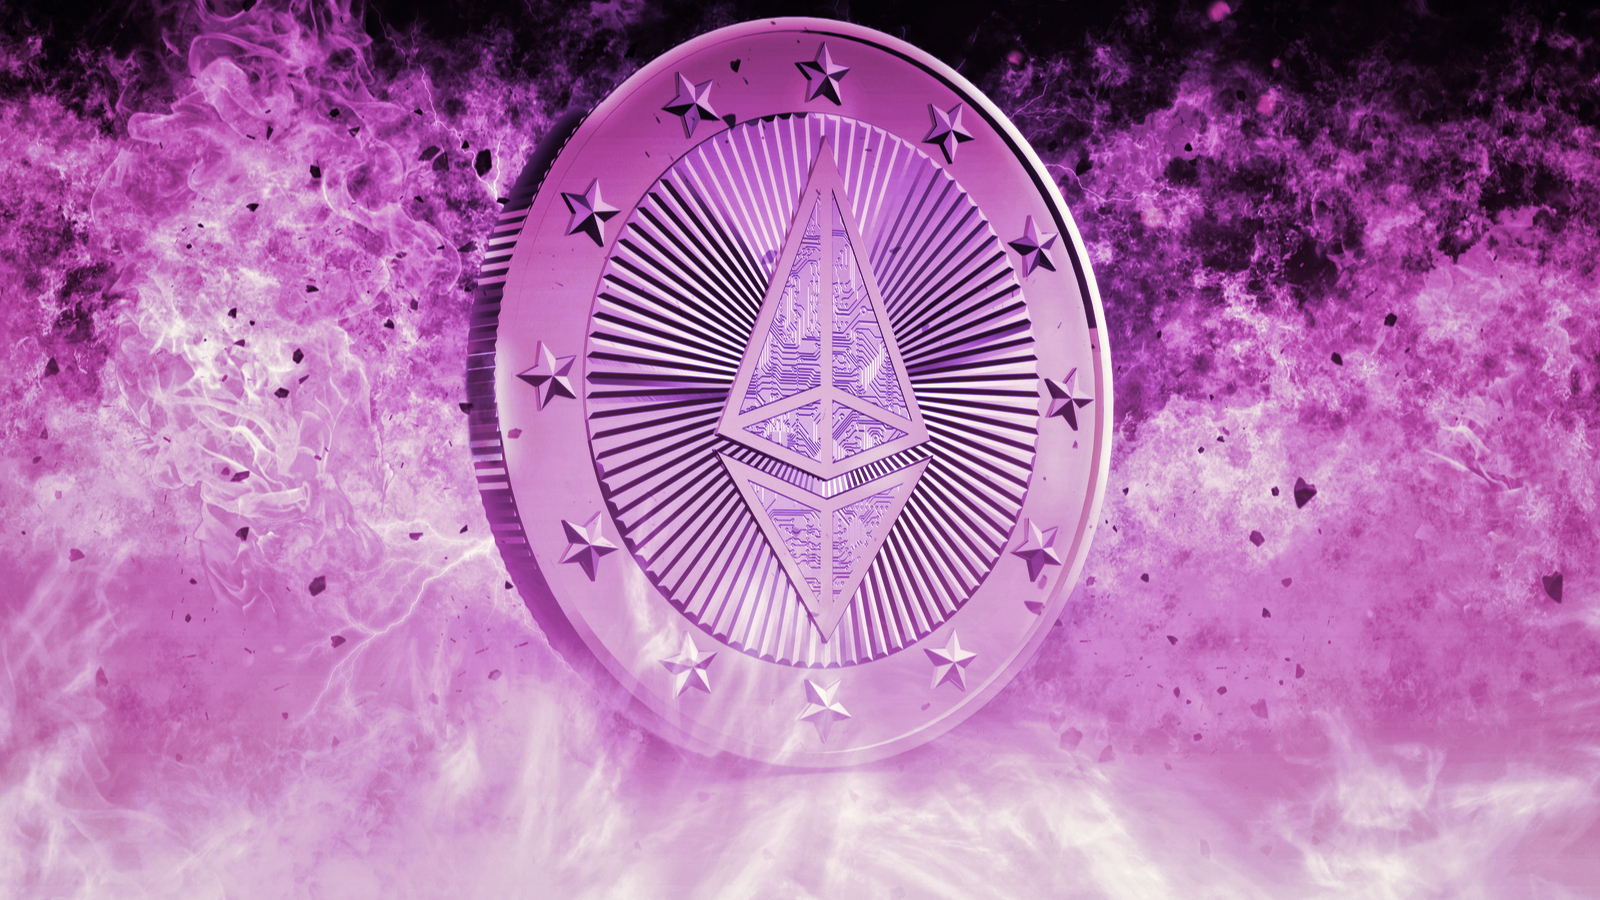 $400 Million in ETH Now Burned by Ethereum EIP-1559 Upgrade